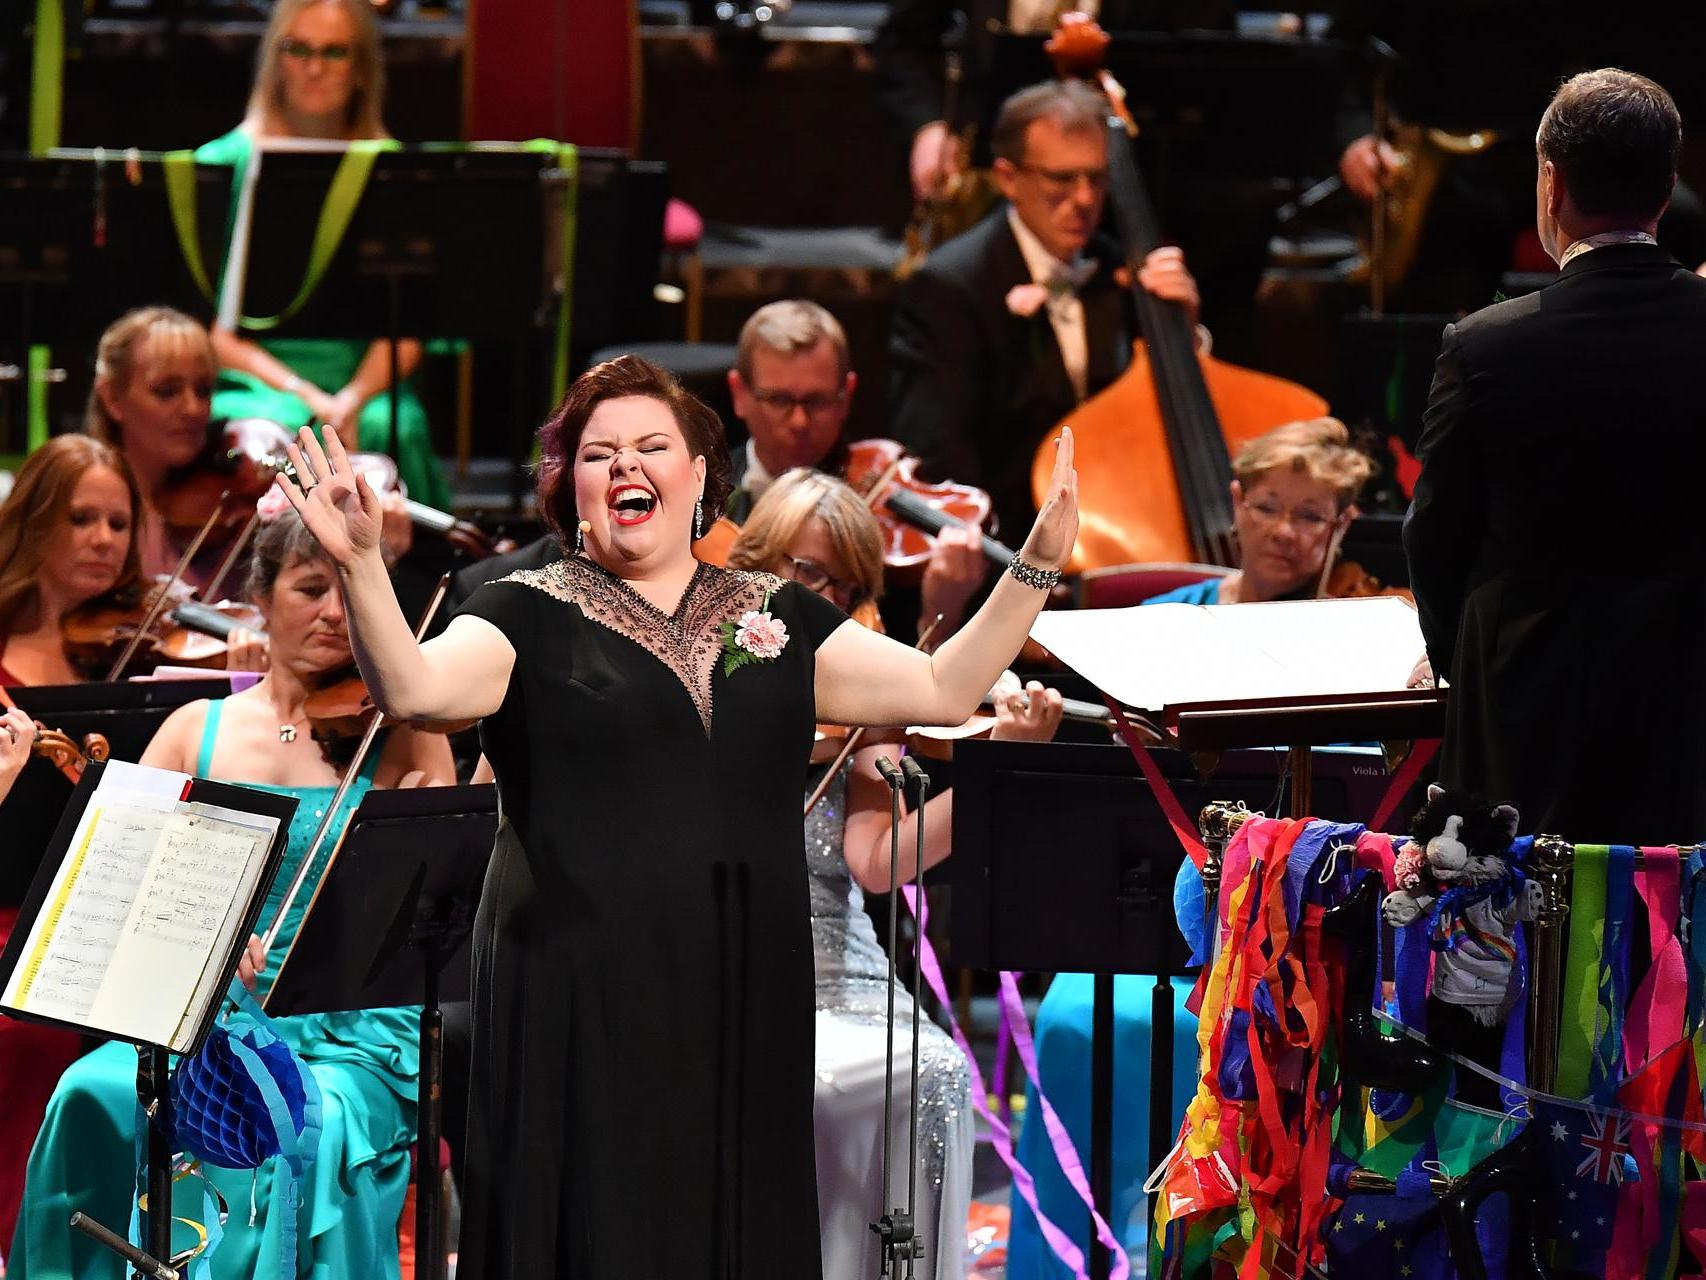 Last Night of the Proms review: Jamie Barton proudly champions bigness and bisexuality with her magnificent presence and voice